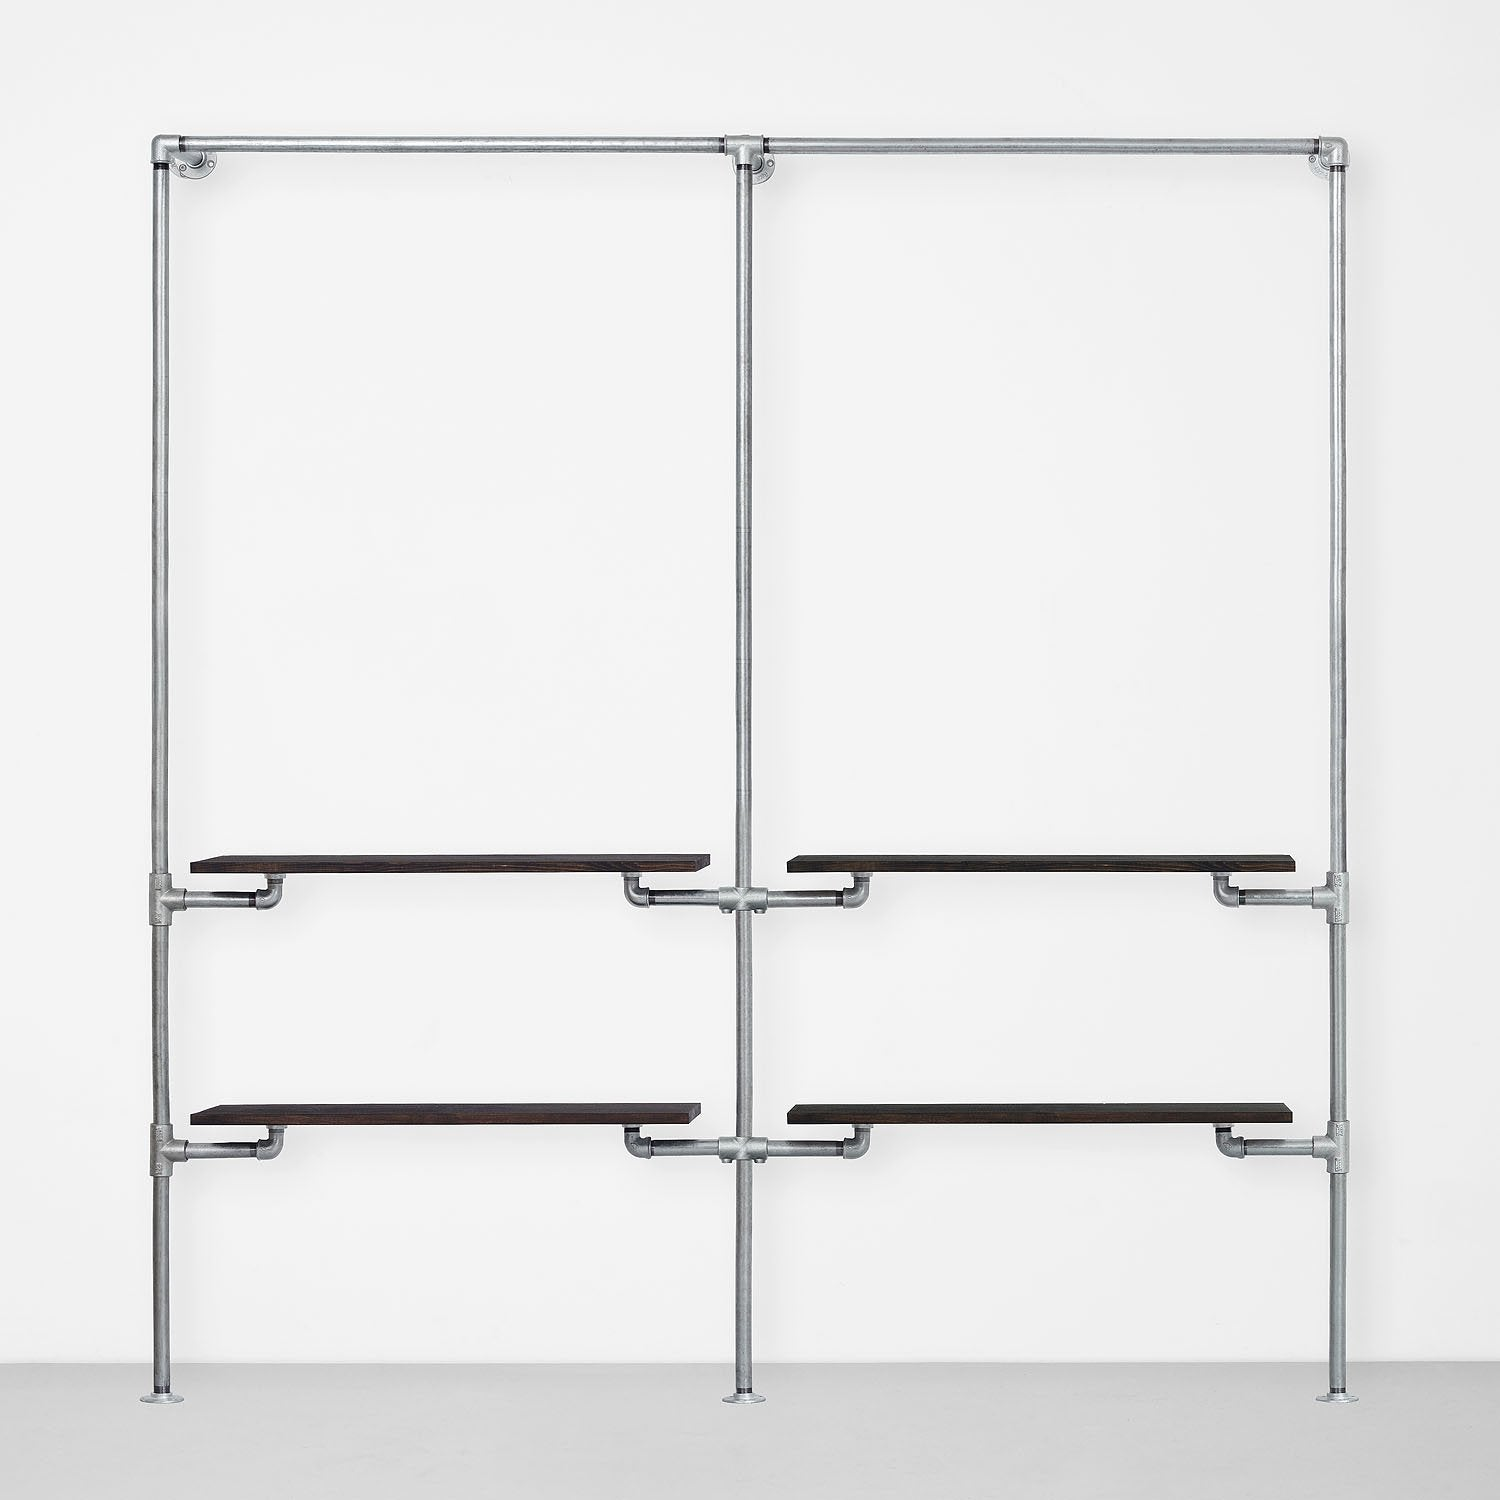 The Walk-In 2 row wardrobe system - (1 rail + 2 shelves / 1 rail + 2 shelves)